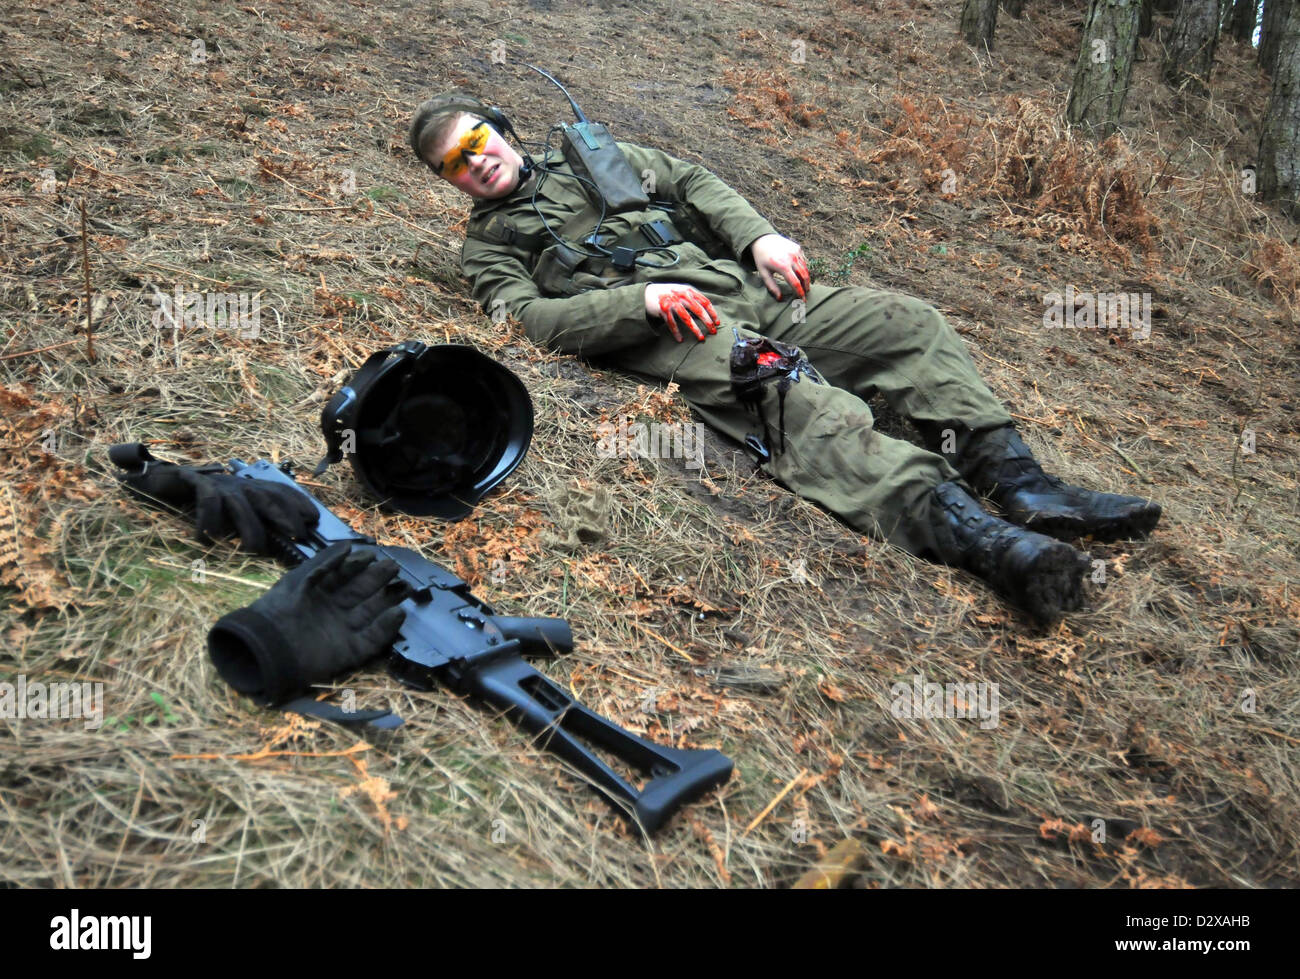 Airsoft, participants in action during an airsoft game, UK ...